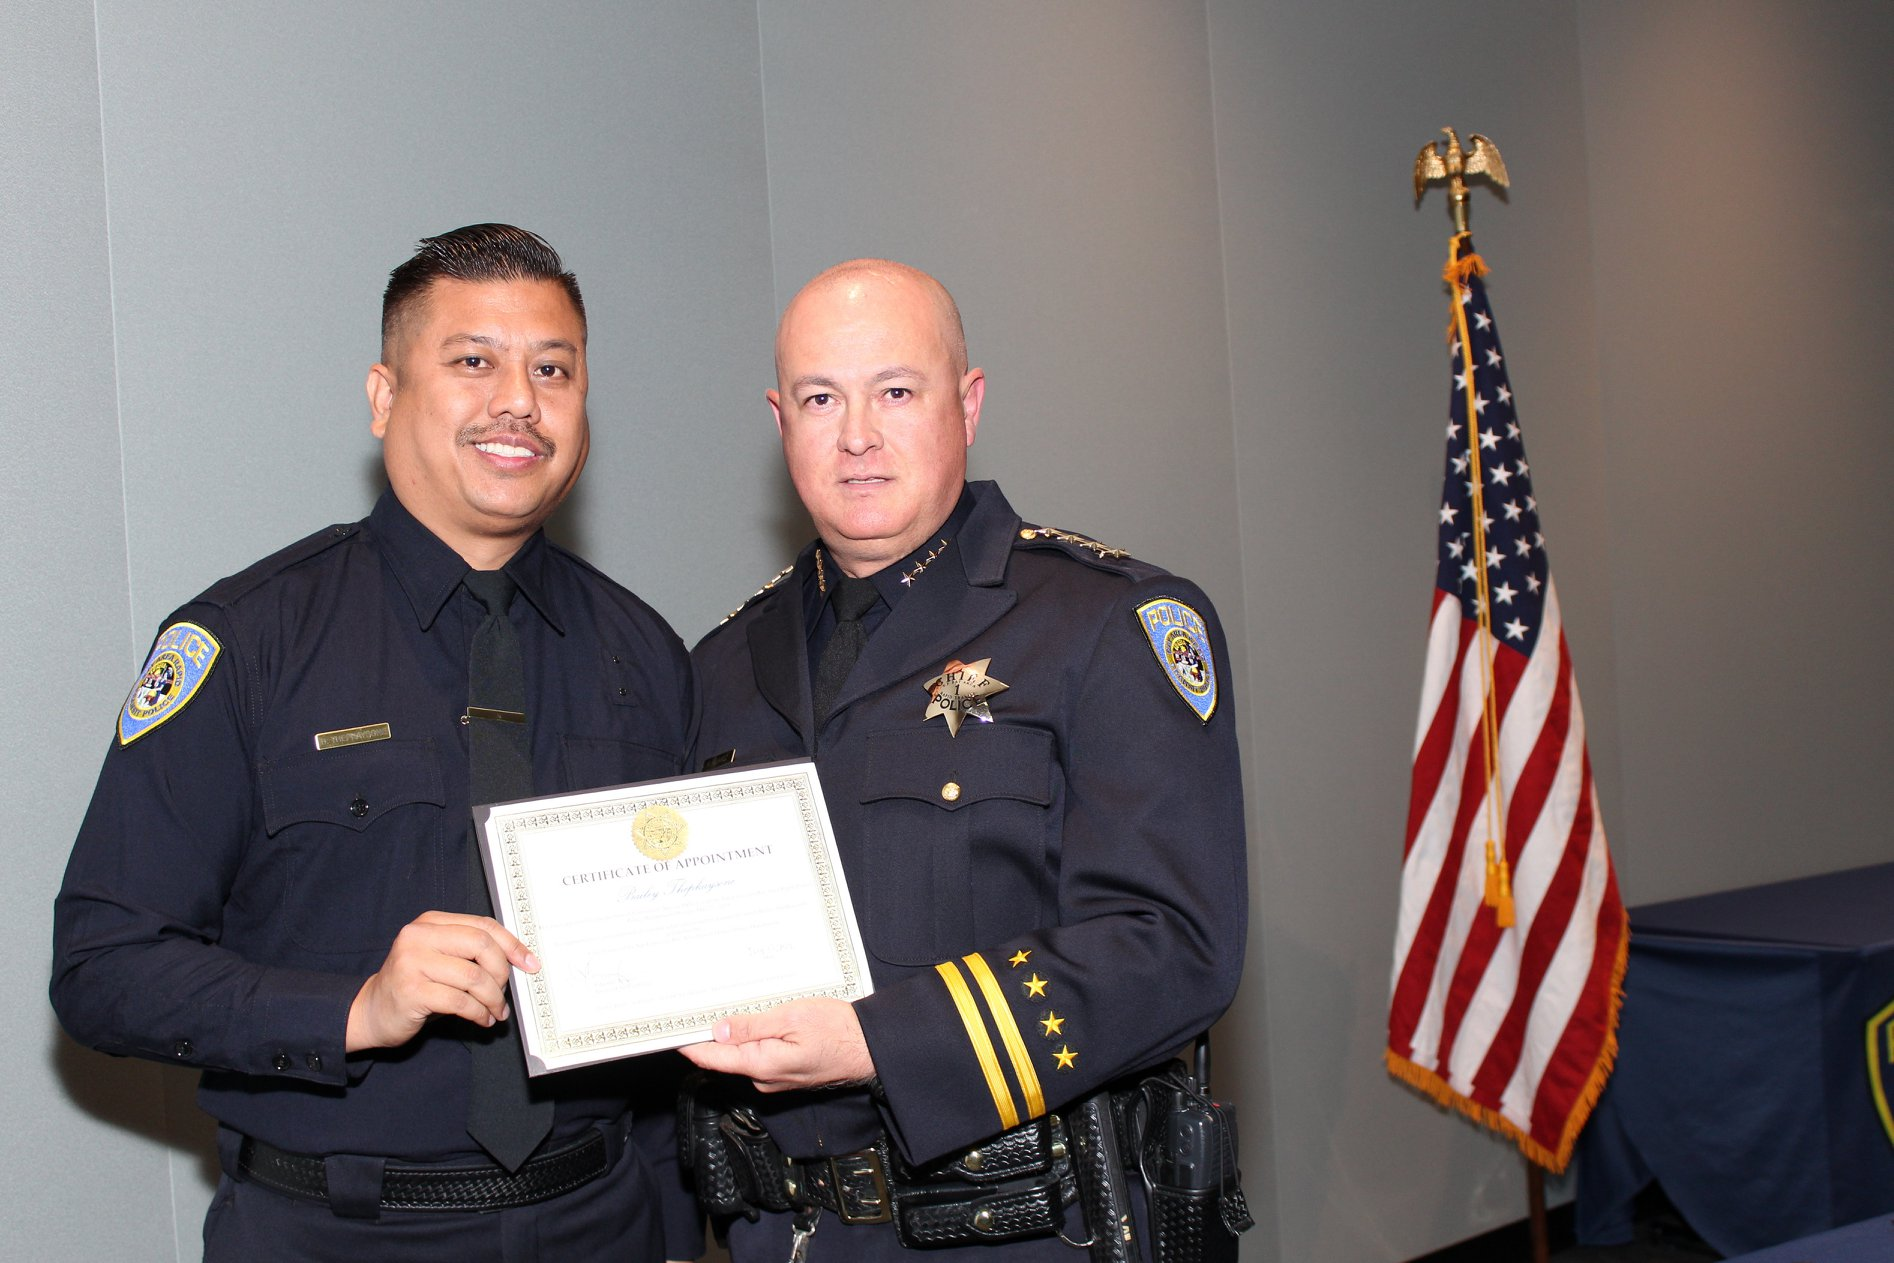 Interim Chief Ed Alvarez poses with sworn-in police officer